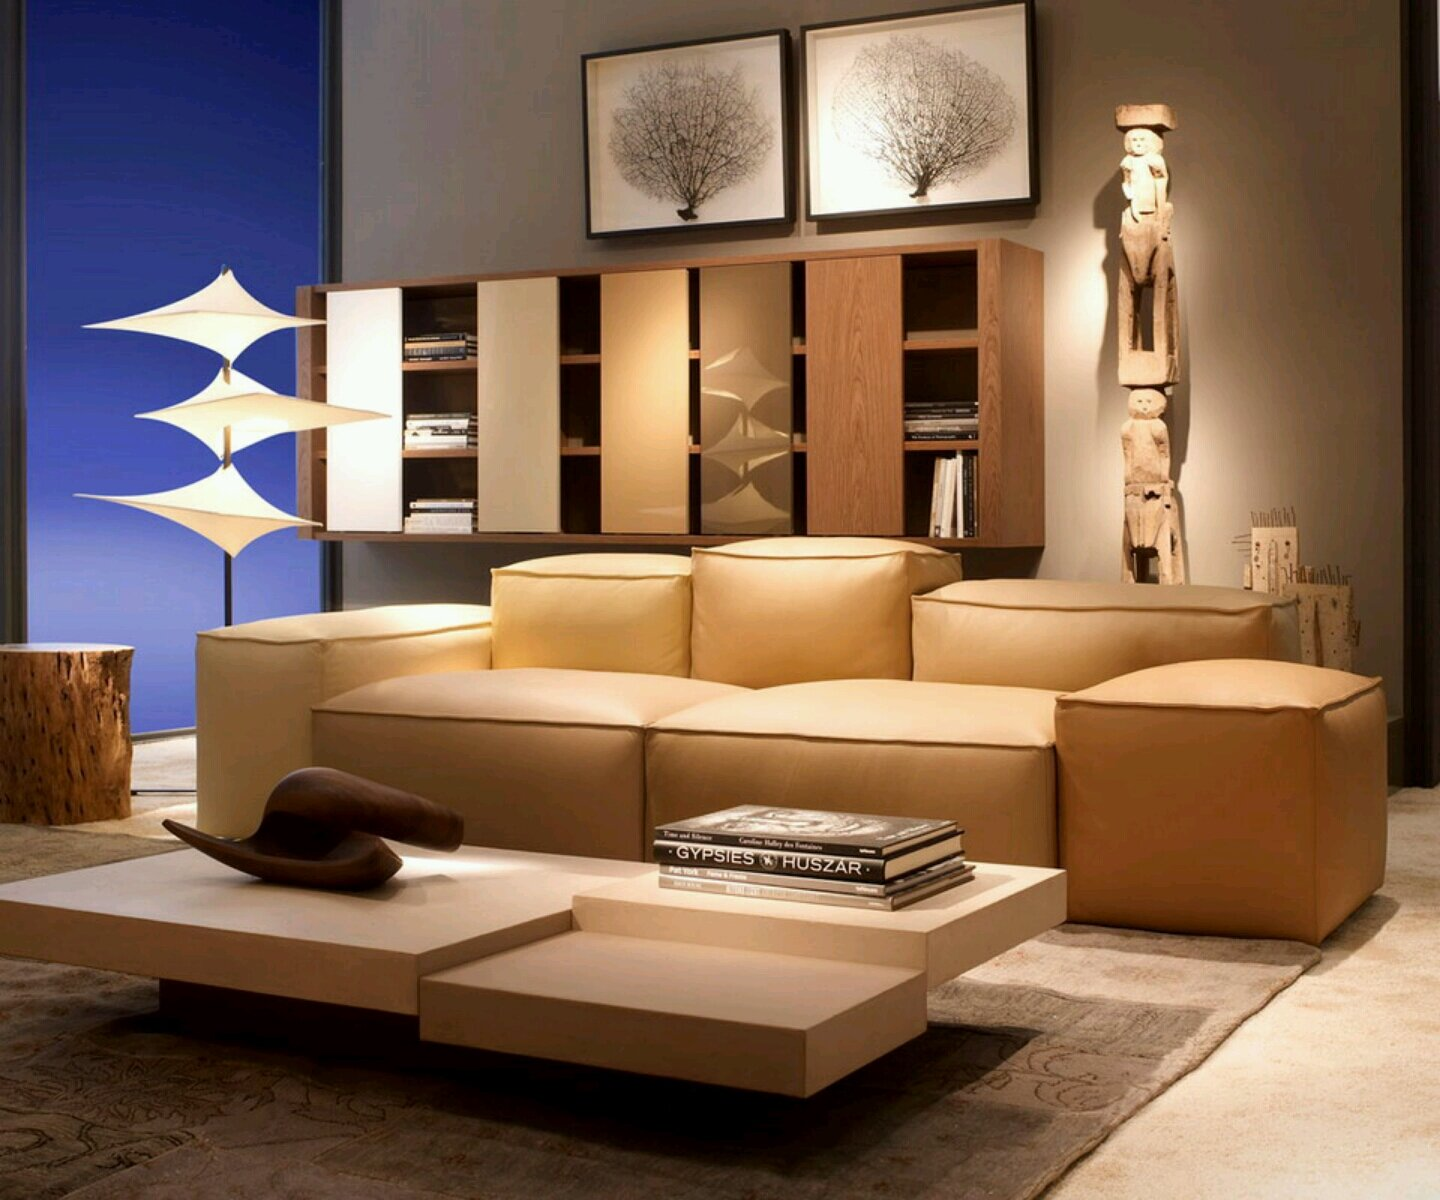 15 really beautiful sofa designs and ideas for Modern furniture for home